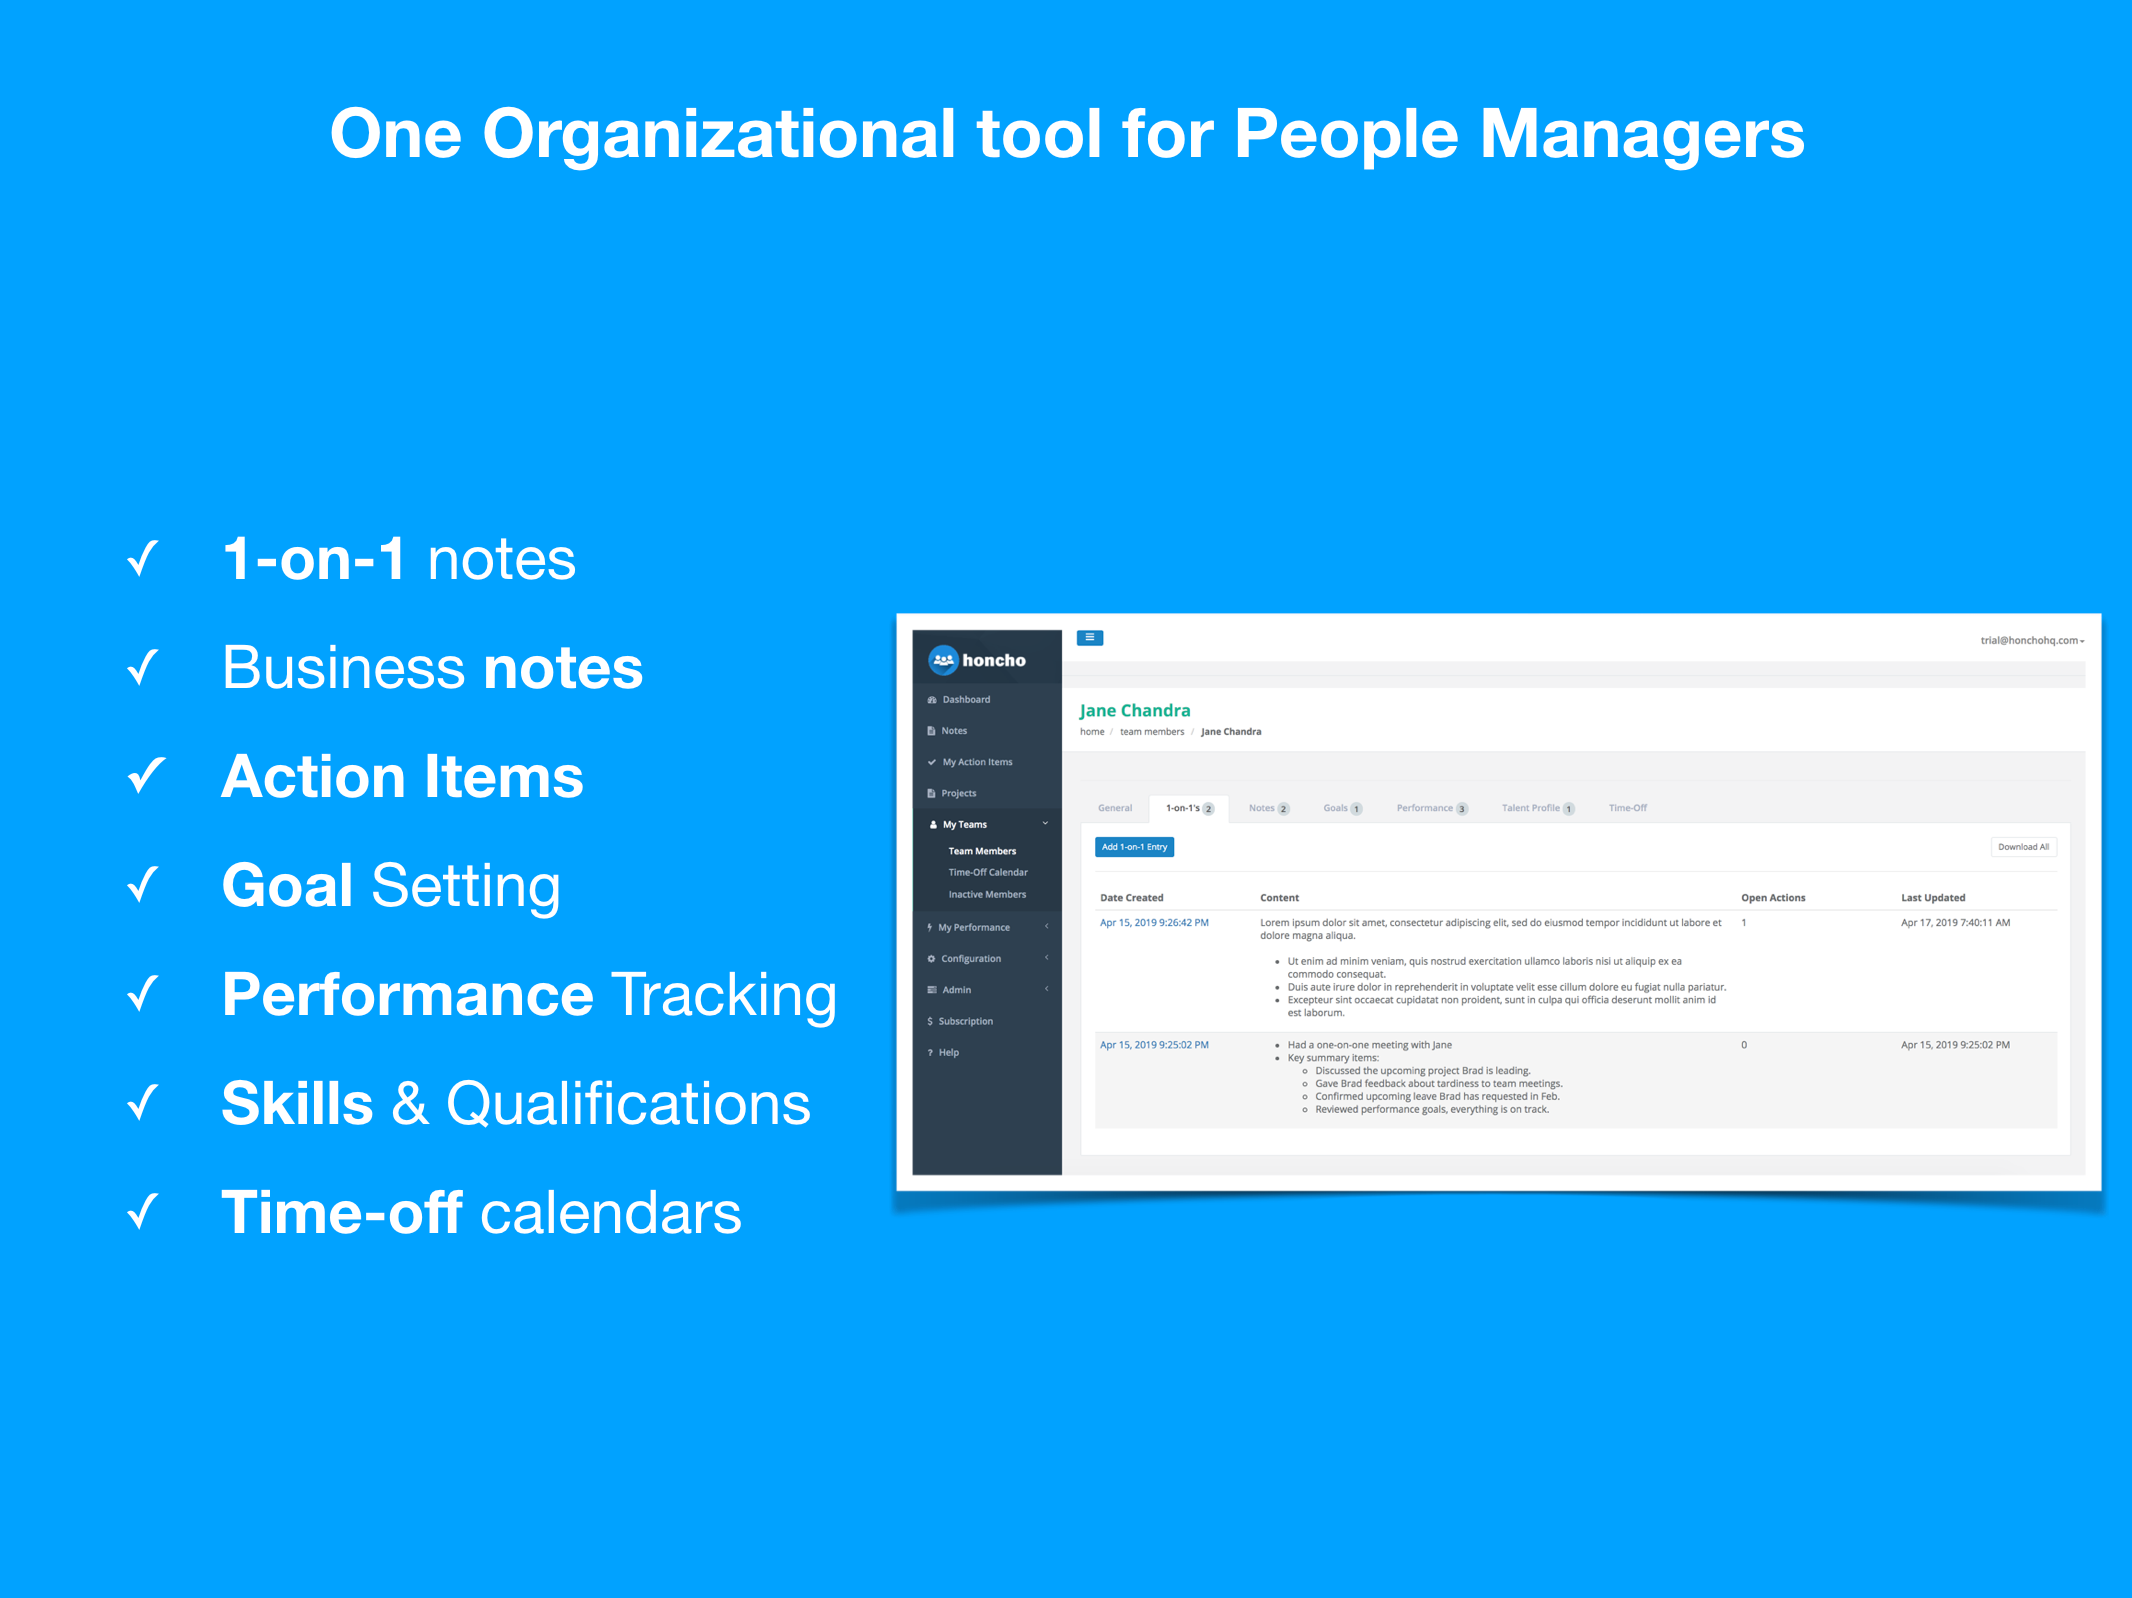 Honcho - An organizational tool built for managers by managers